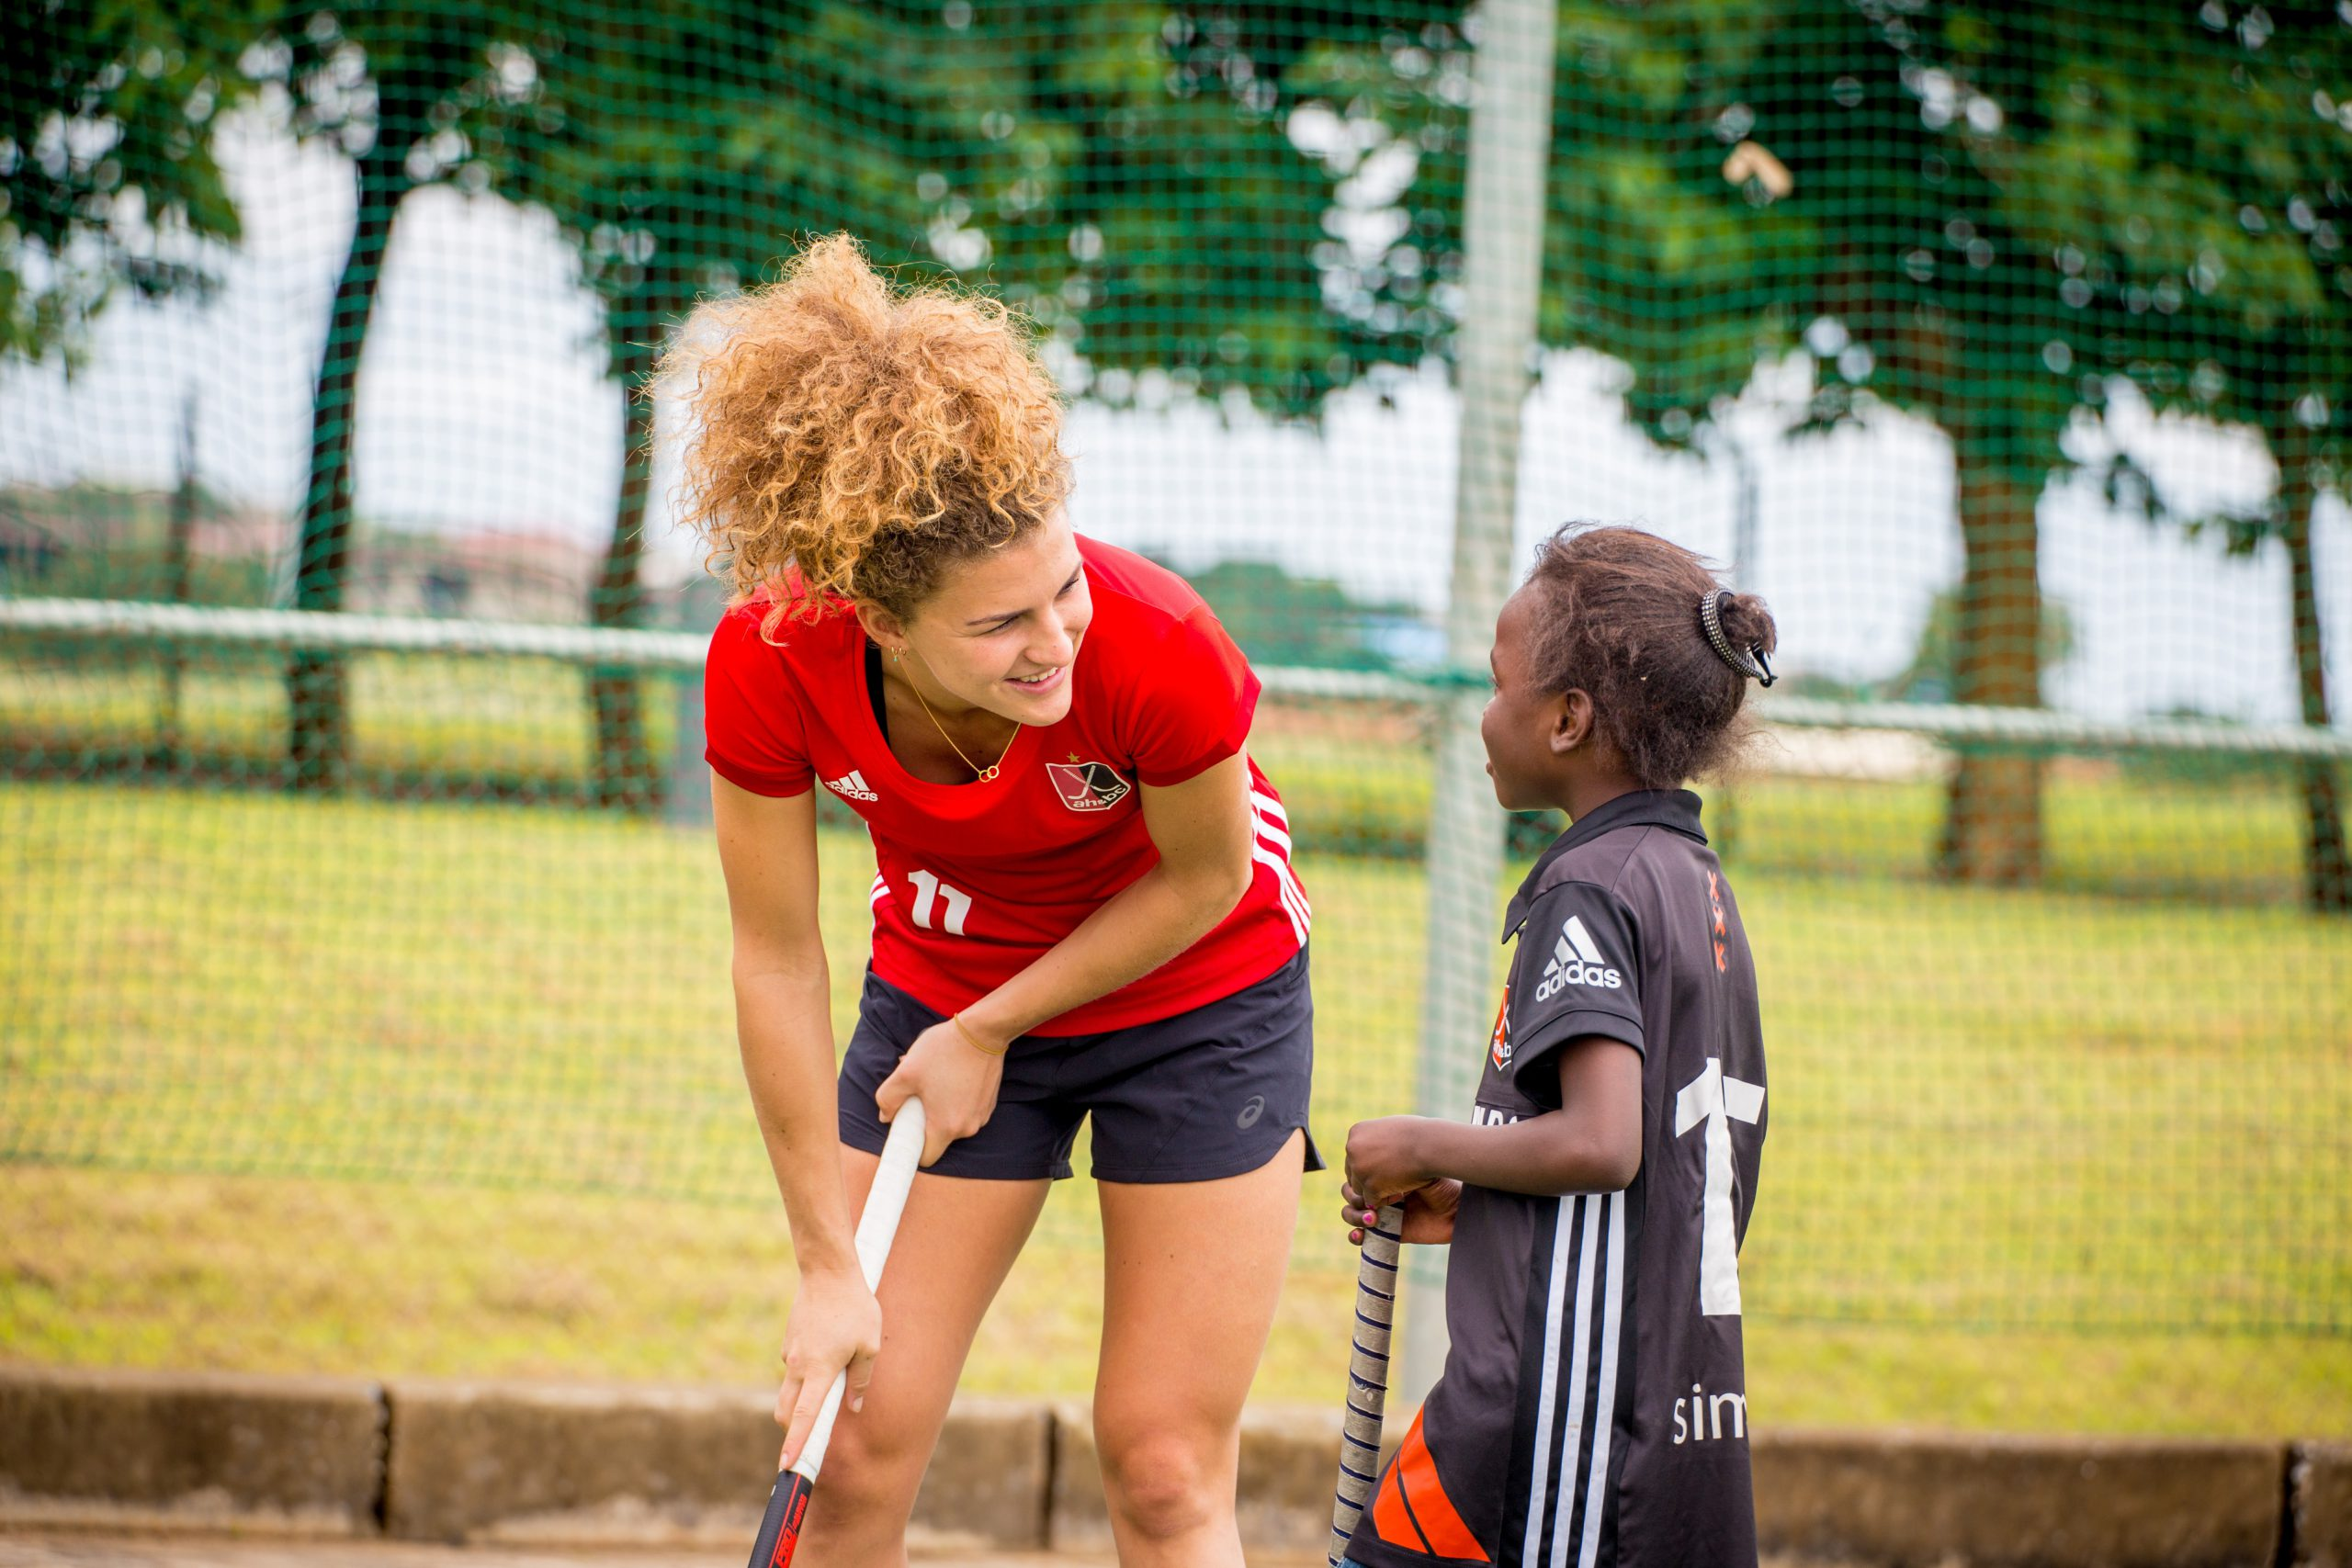 Gryphon supports Zambian hockey development